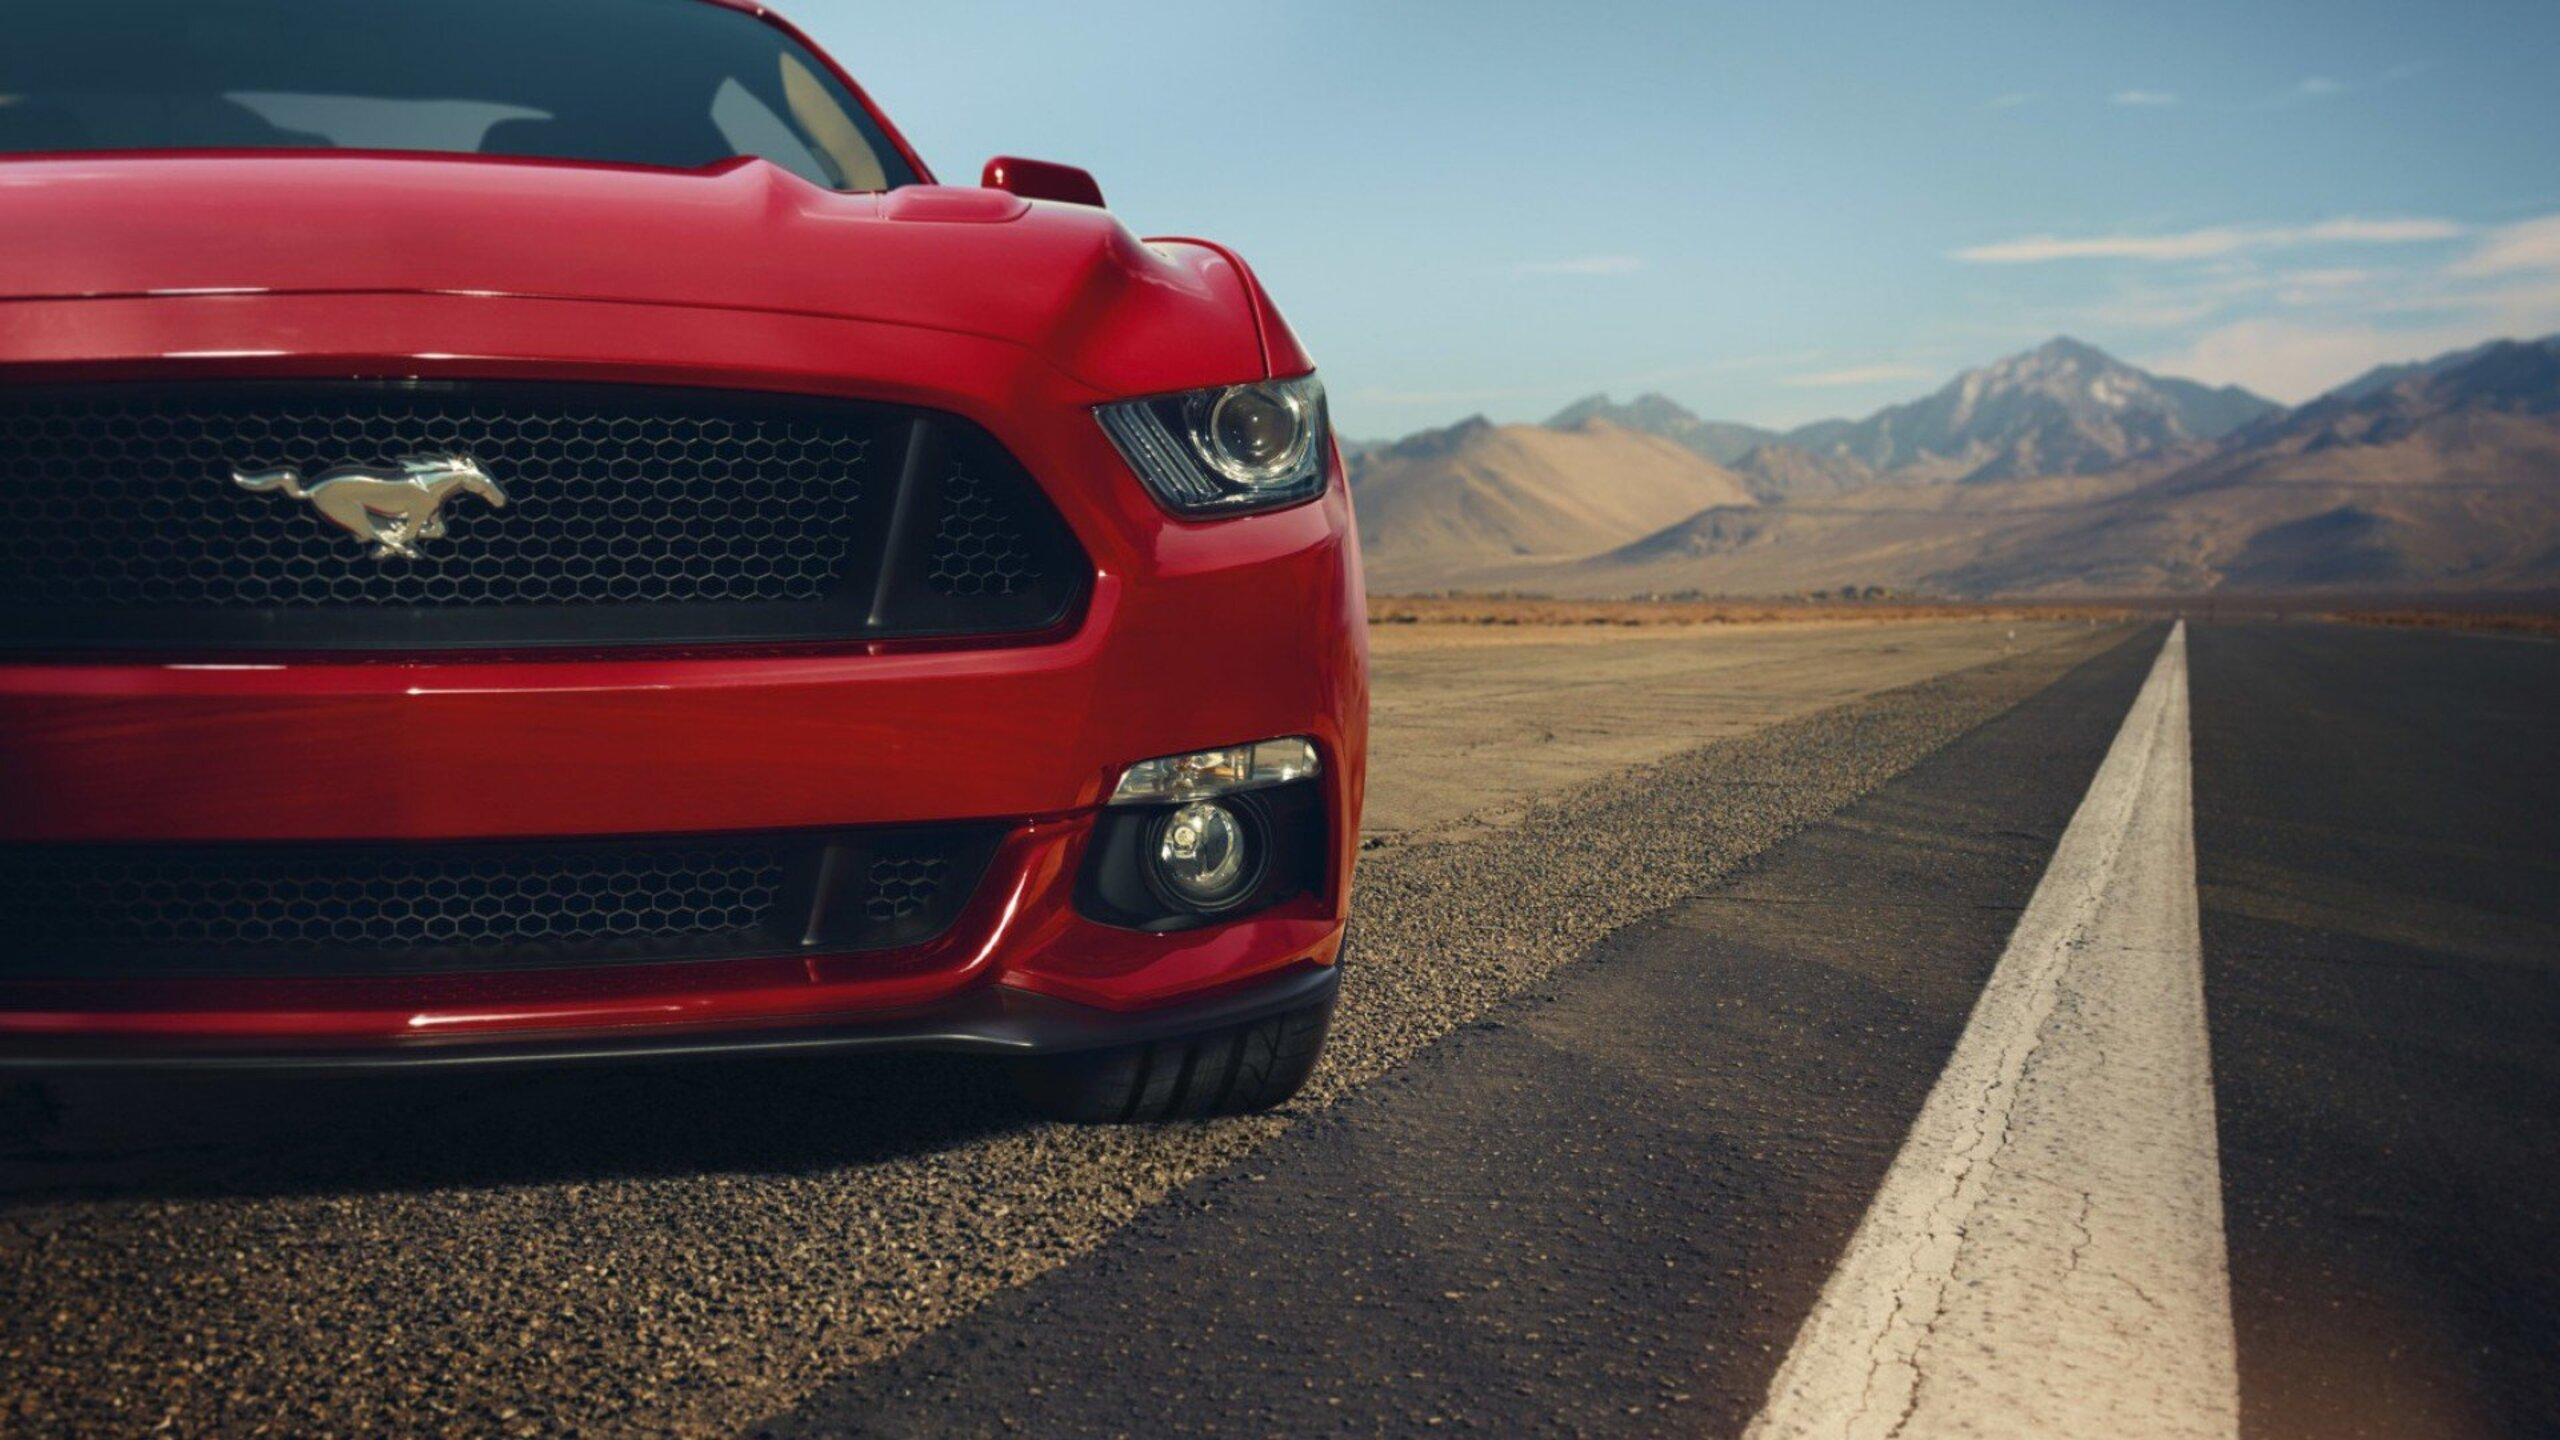 2560x1440 ford mustang gt red front muscle car 1440p resolution hd 4k wallpapers images - Ford mustang wallpaper download ...